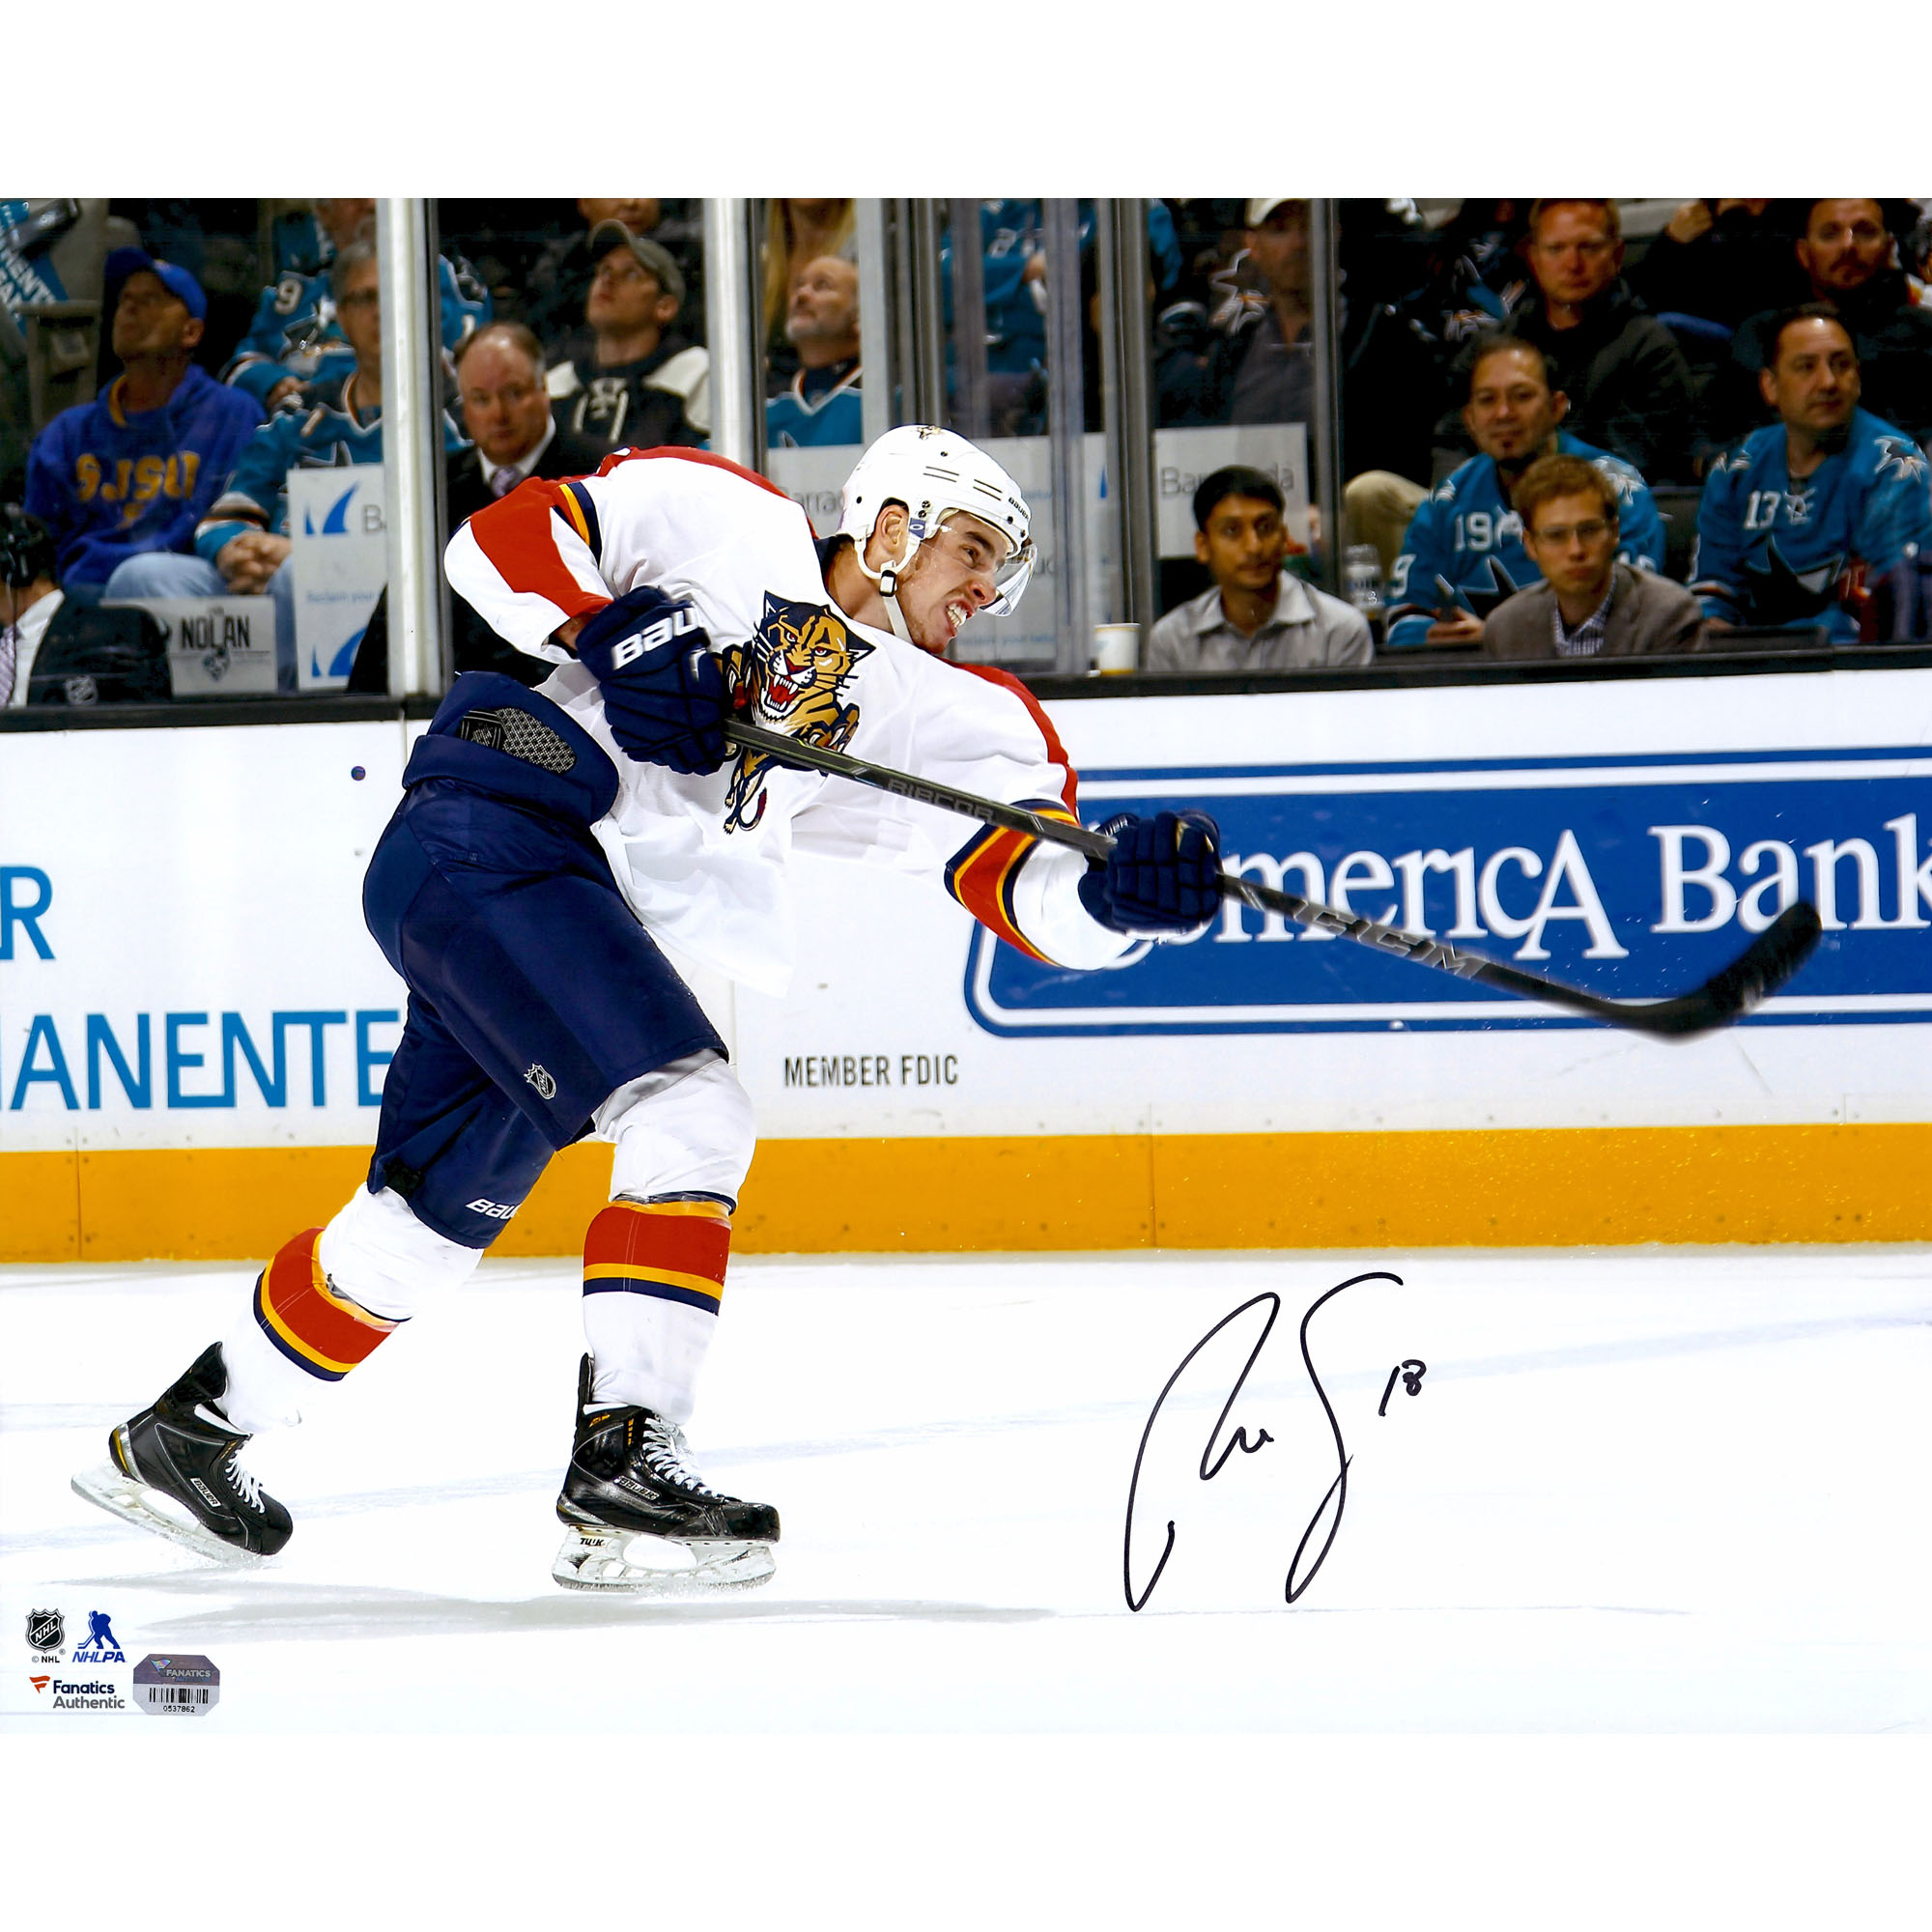 """Reilly Smith Florida Panthers Fanatics Authentic Autographed 16"""" x 20"""" White Jersey Shooting Photograph - No Size"""